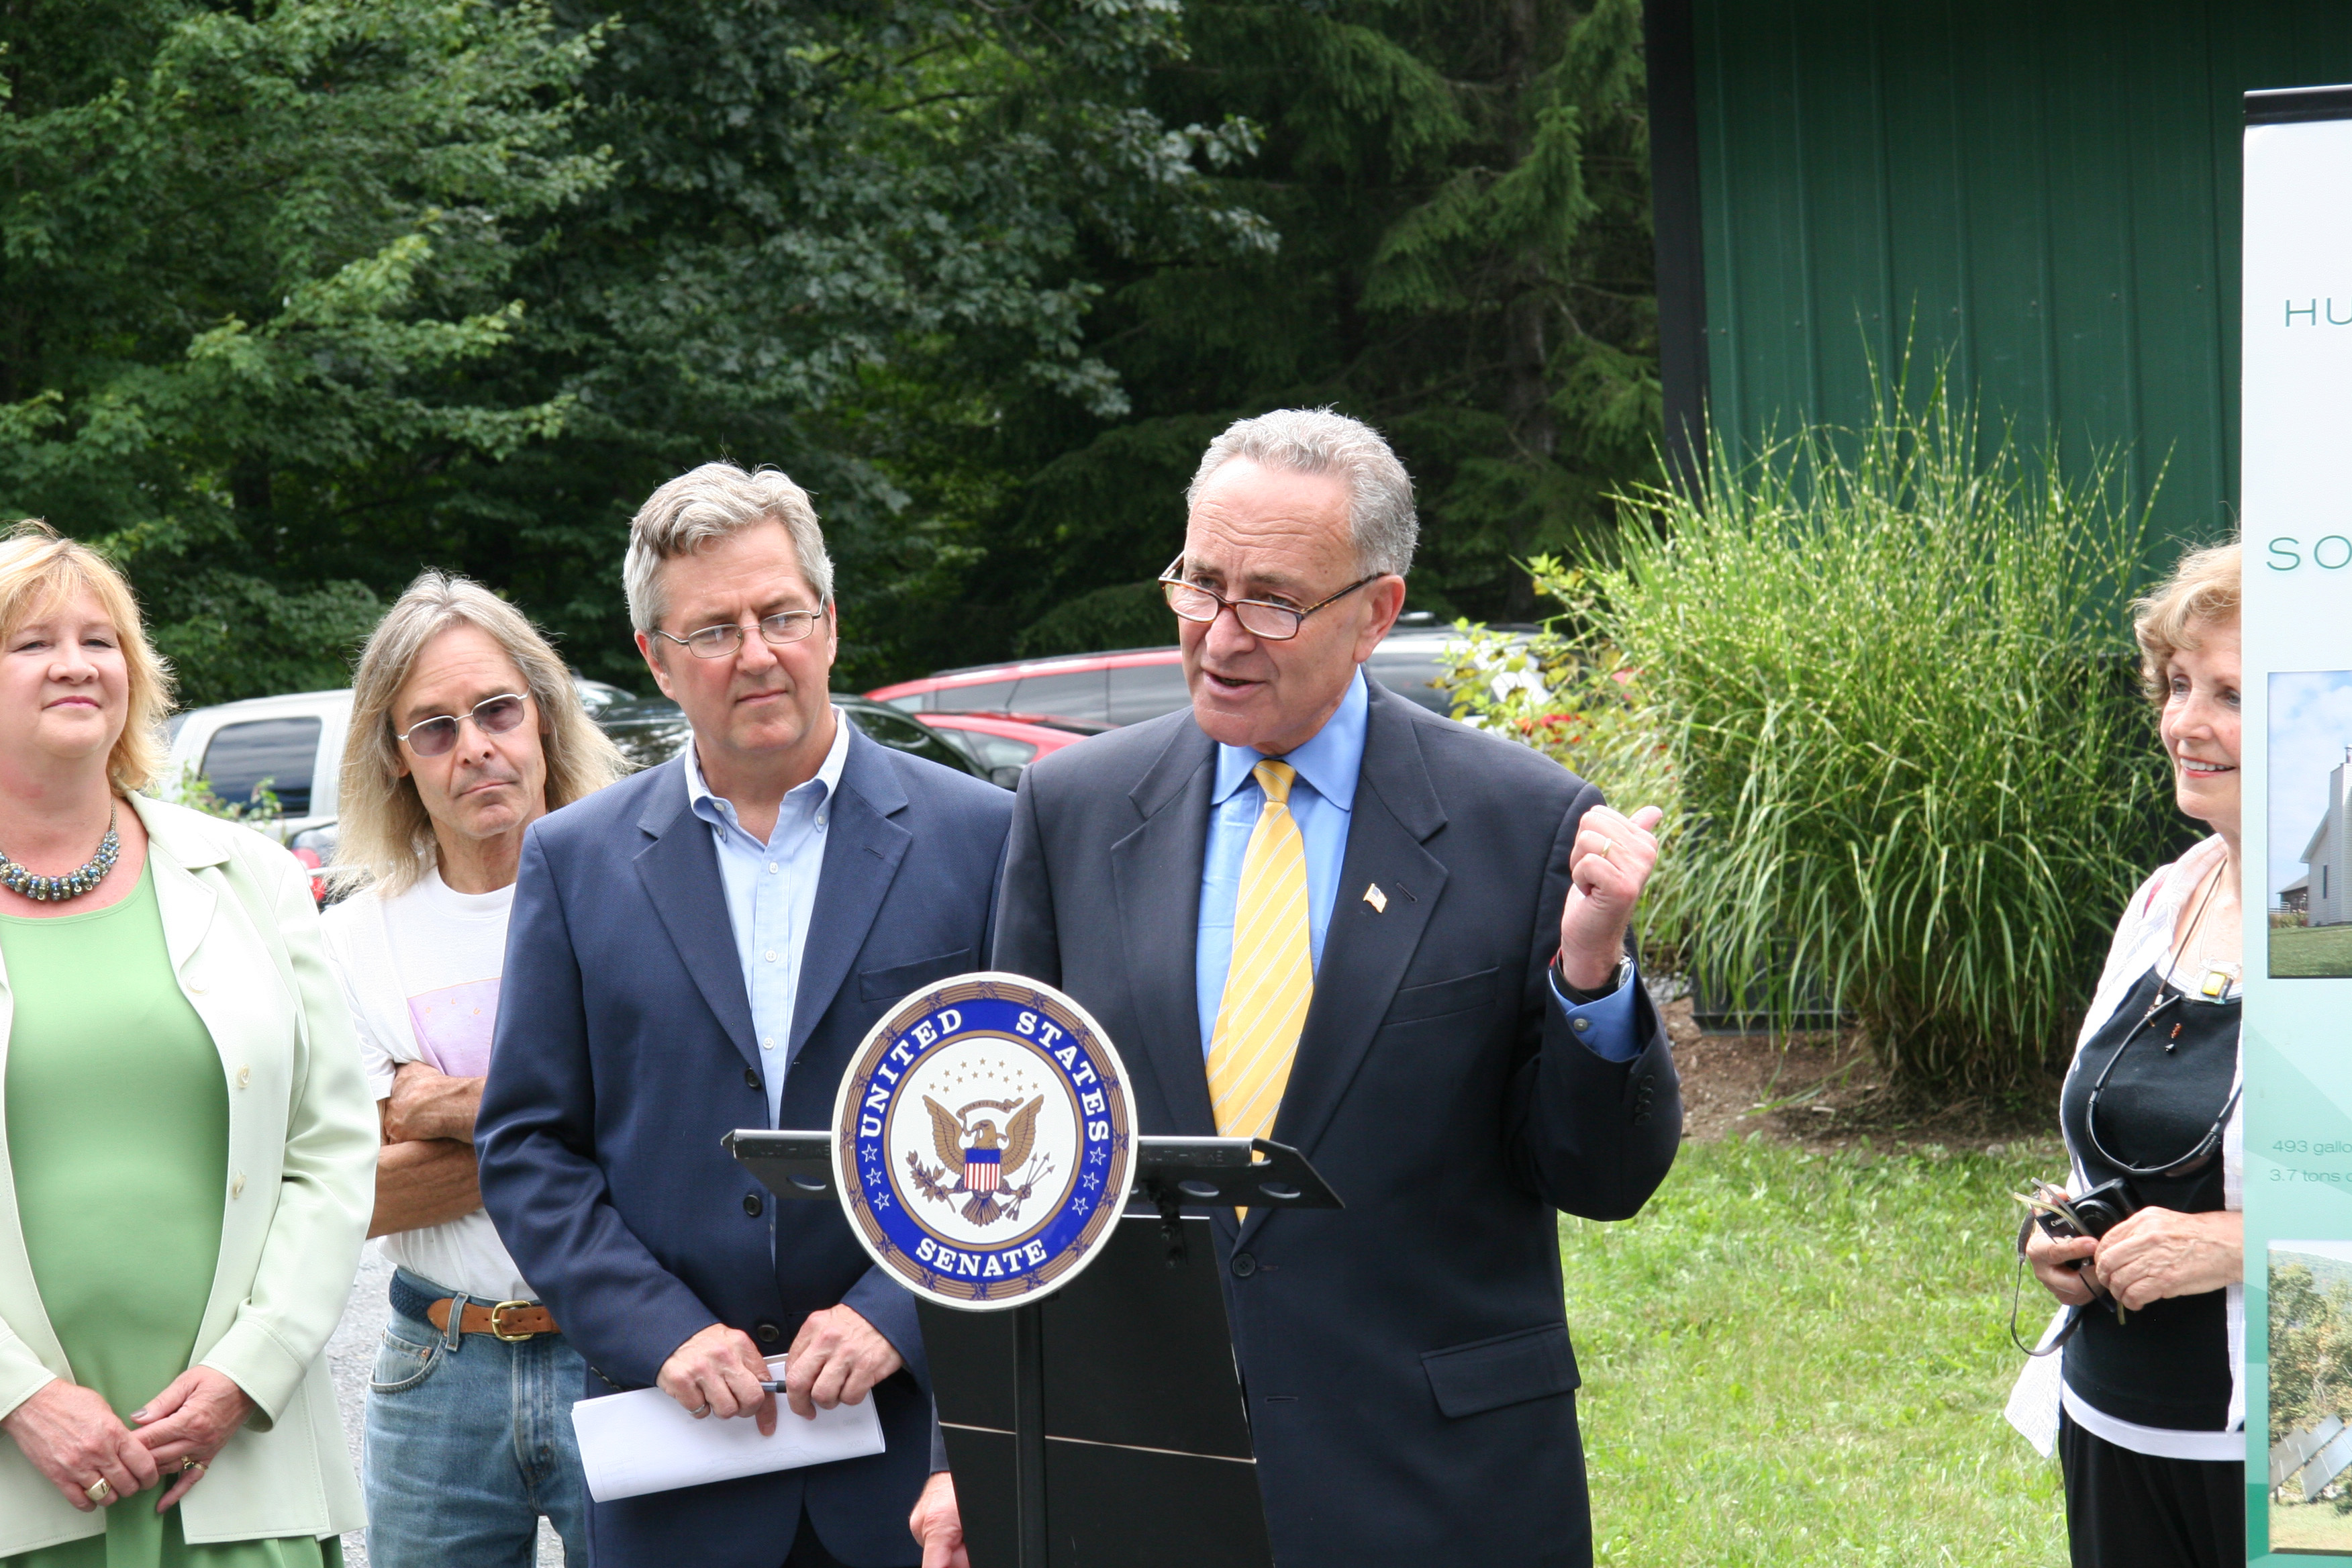 U.S. Senator Charles Schumer (right) and Hudson Solar president Jeff Irish (center) discussed the ramifications of capping net-metering.